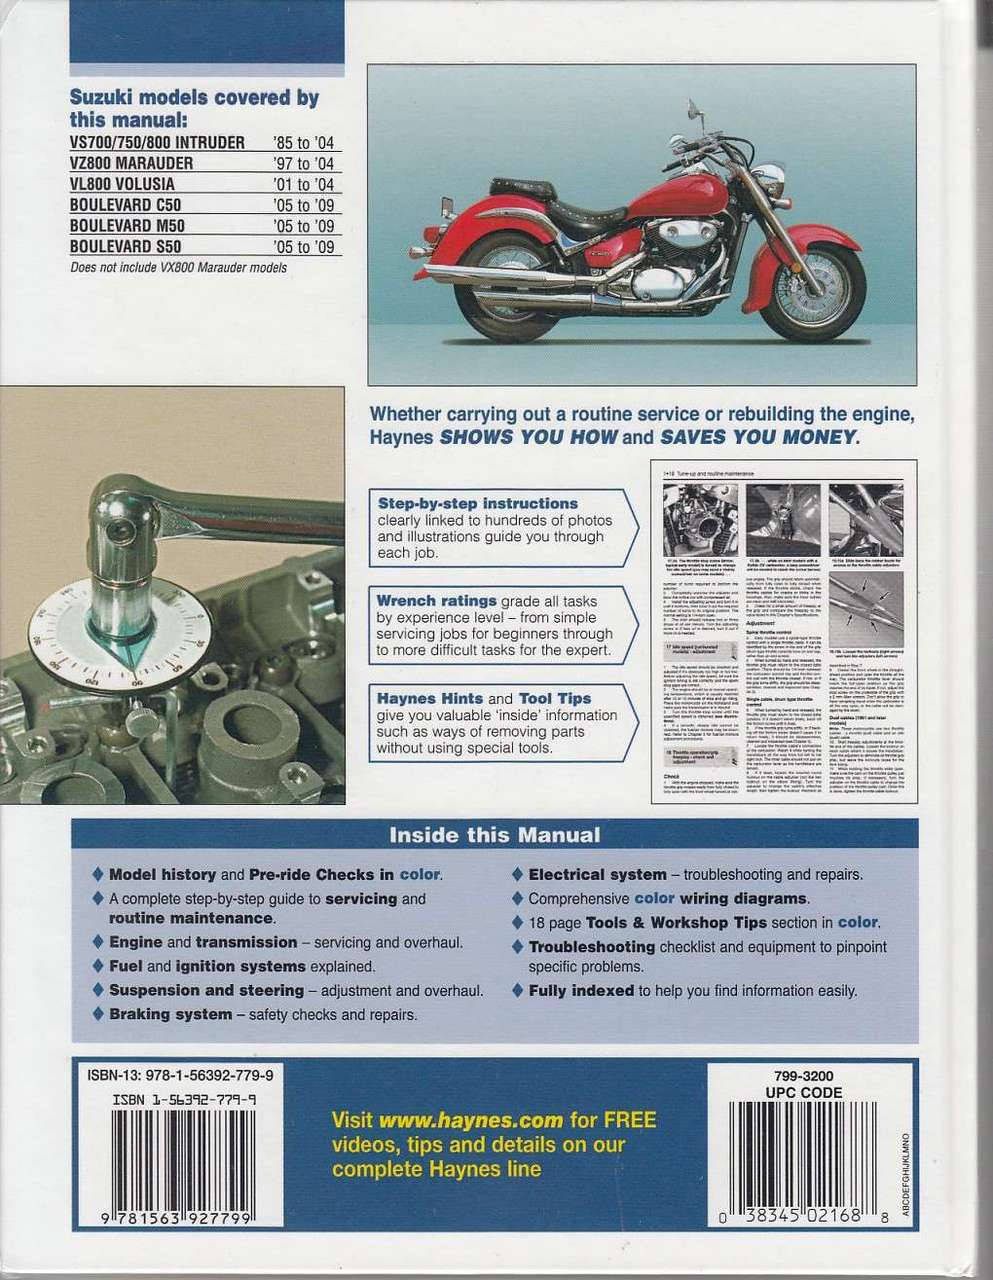 ... Suzuki intruder, Marauder, Volusia and Boulevard Workshop Manual Back  ...